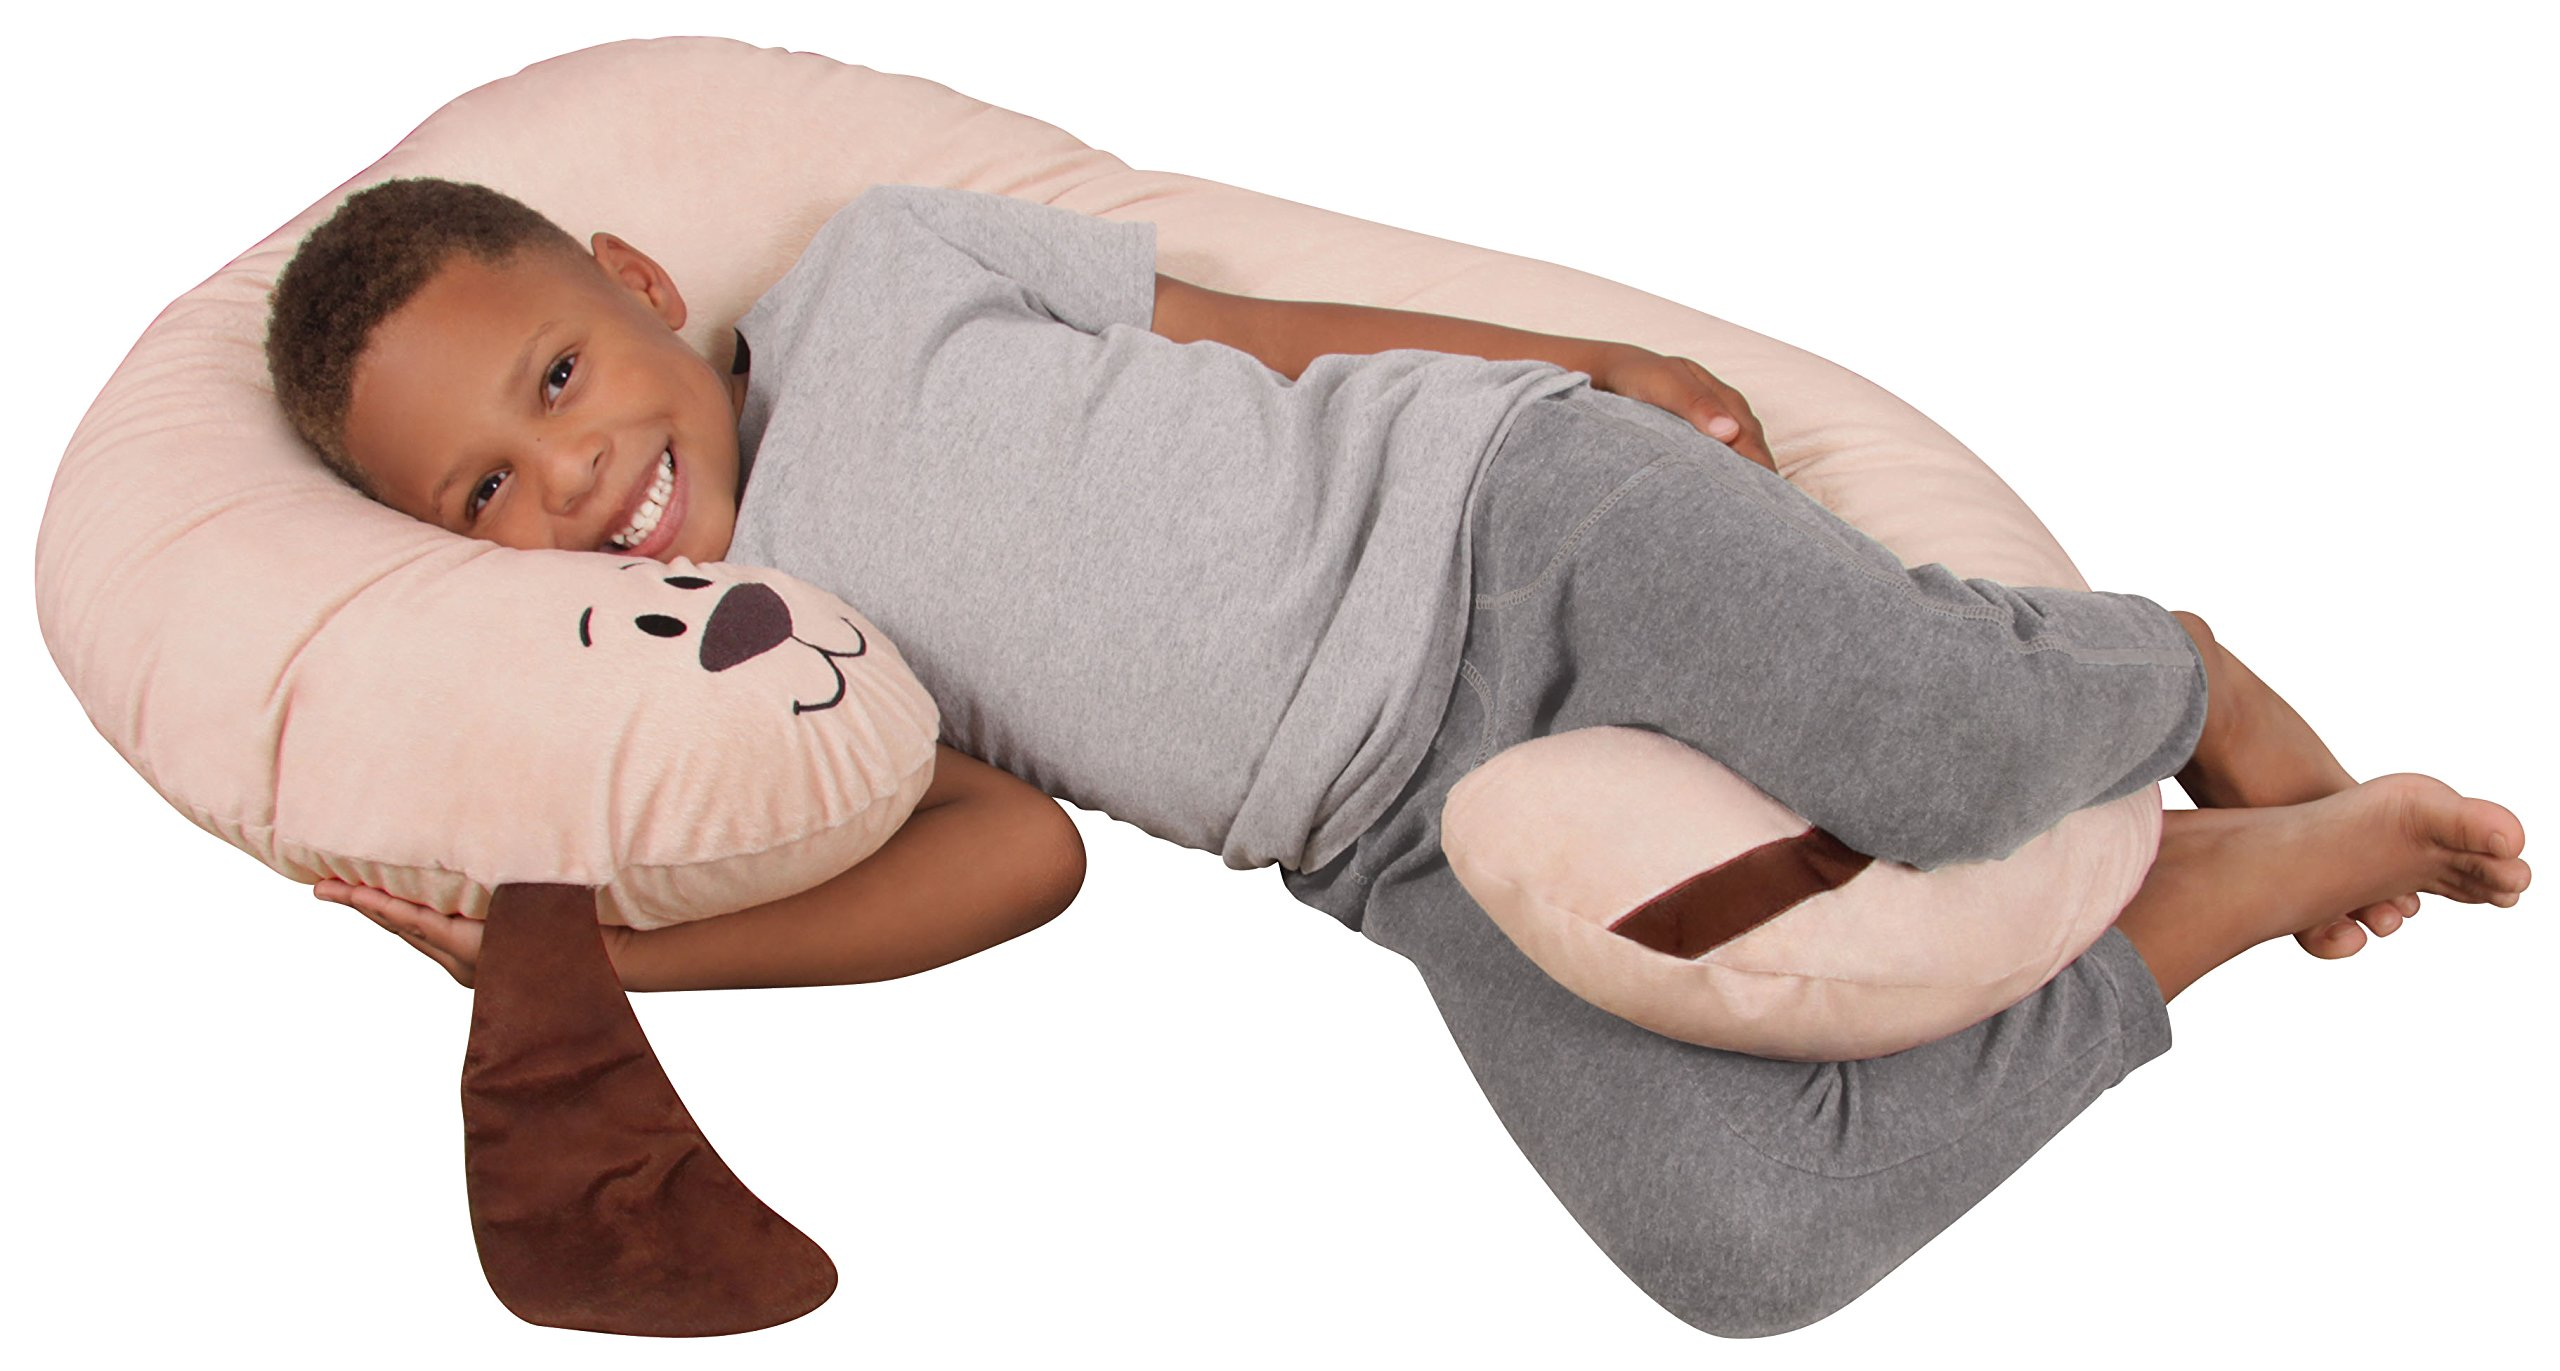 Leachco Snoogle Jr. - Luxuriously Soft Plush Puppy with Zippered Removable Cover - The Snuggle, Cuddle, Animal Body Pillow for Kids